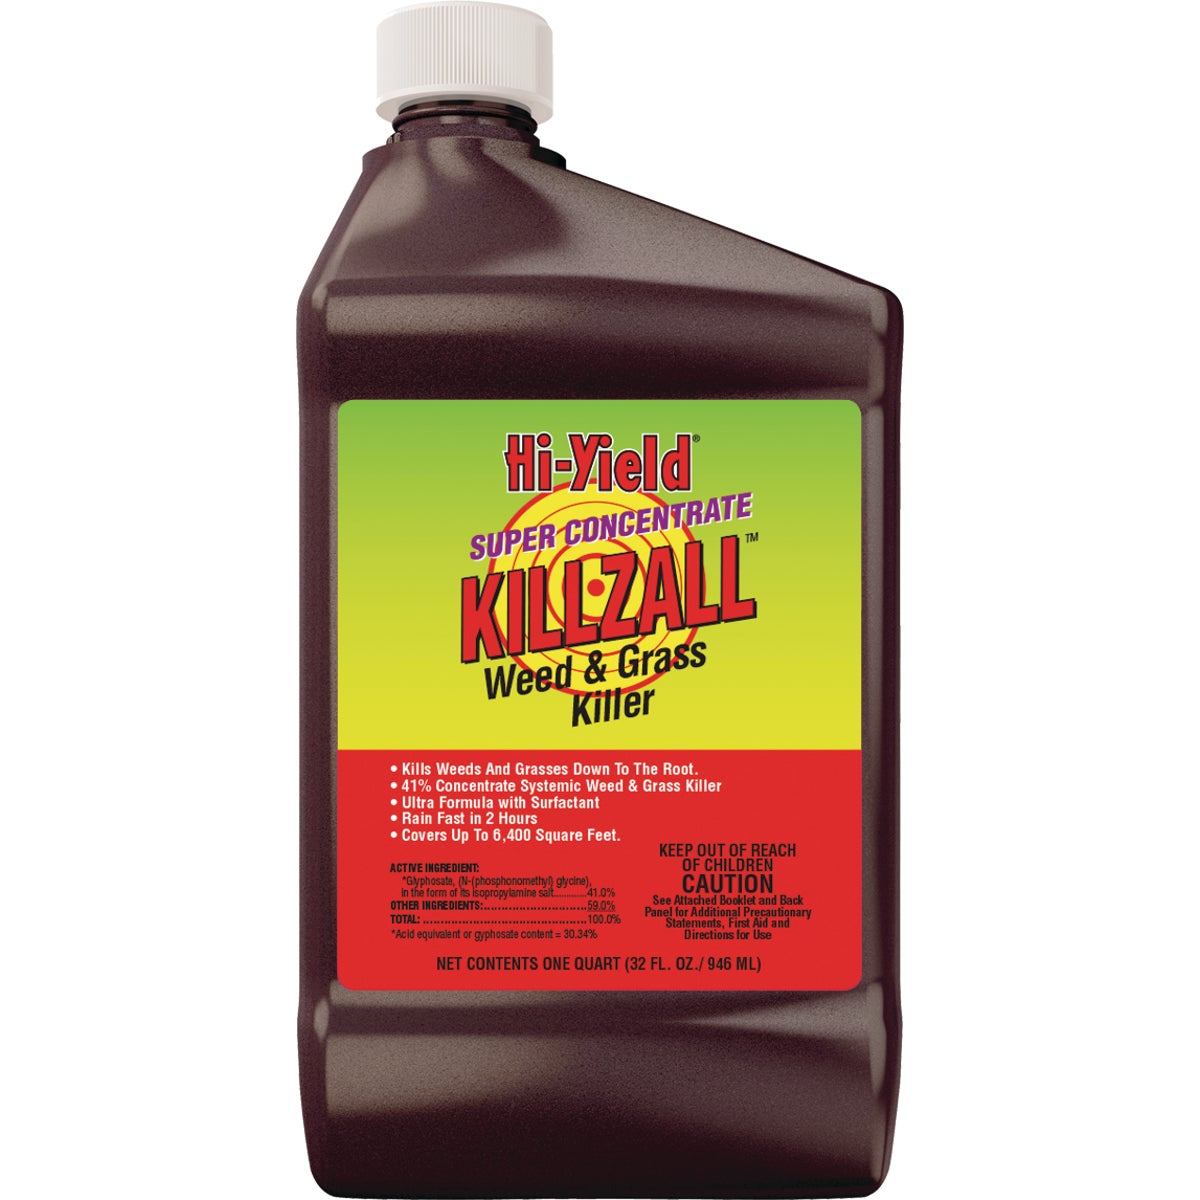 32OZ WD & GRASS KILLER - 33692 by Vpg Fertilome